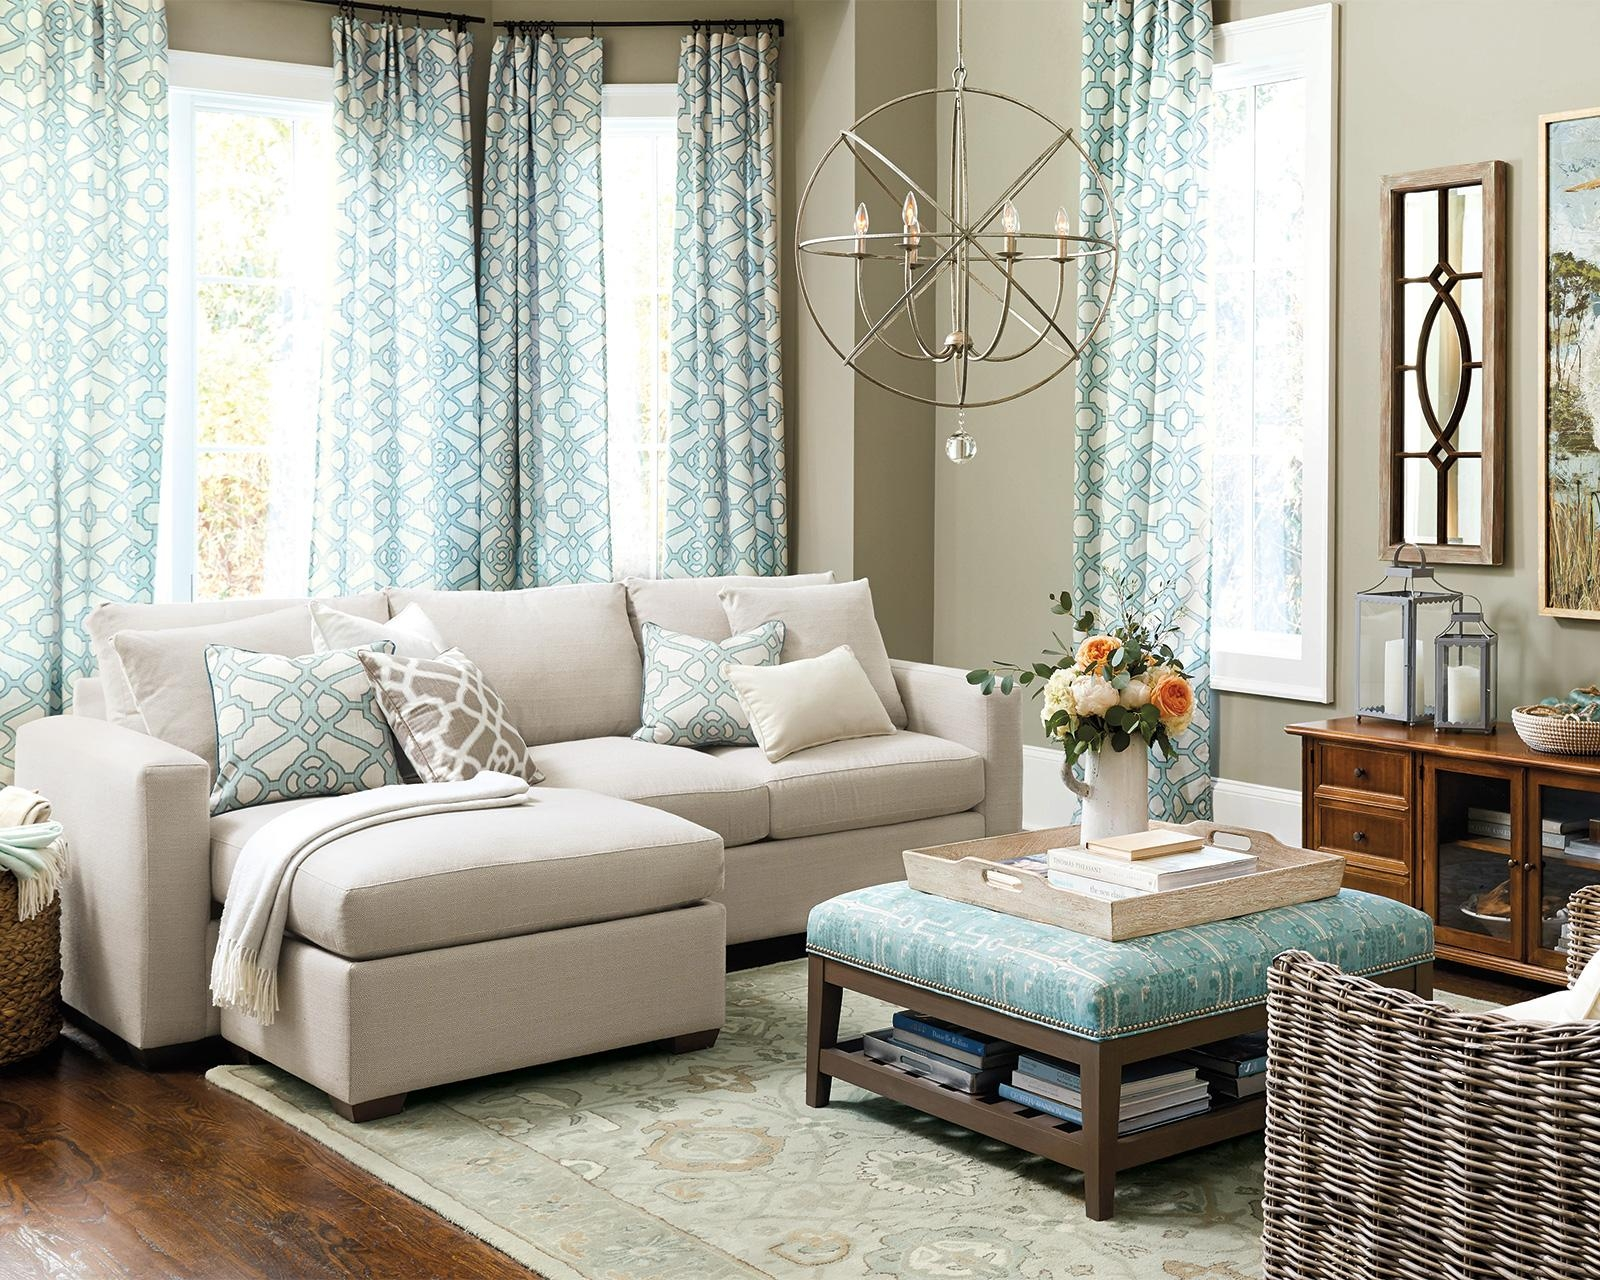 How To Match A Coffee Table To Your Sectional – How To Decorate Throughout Coffee Table For Sectional Sofa (Image 10 of 15)